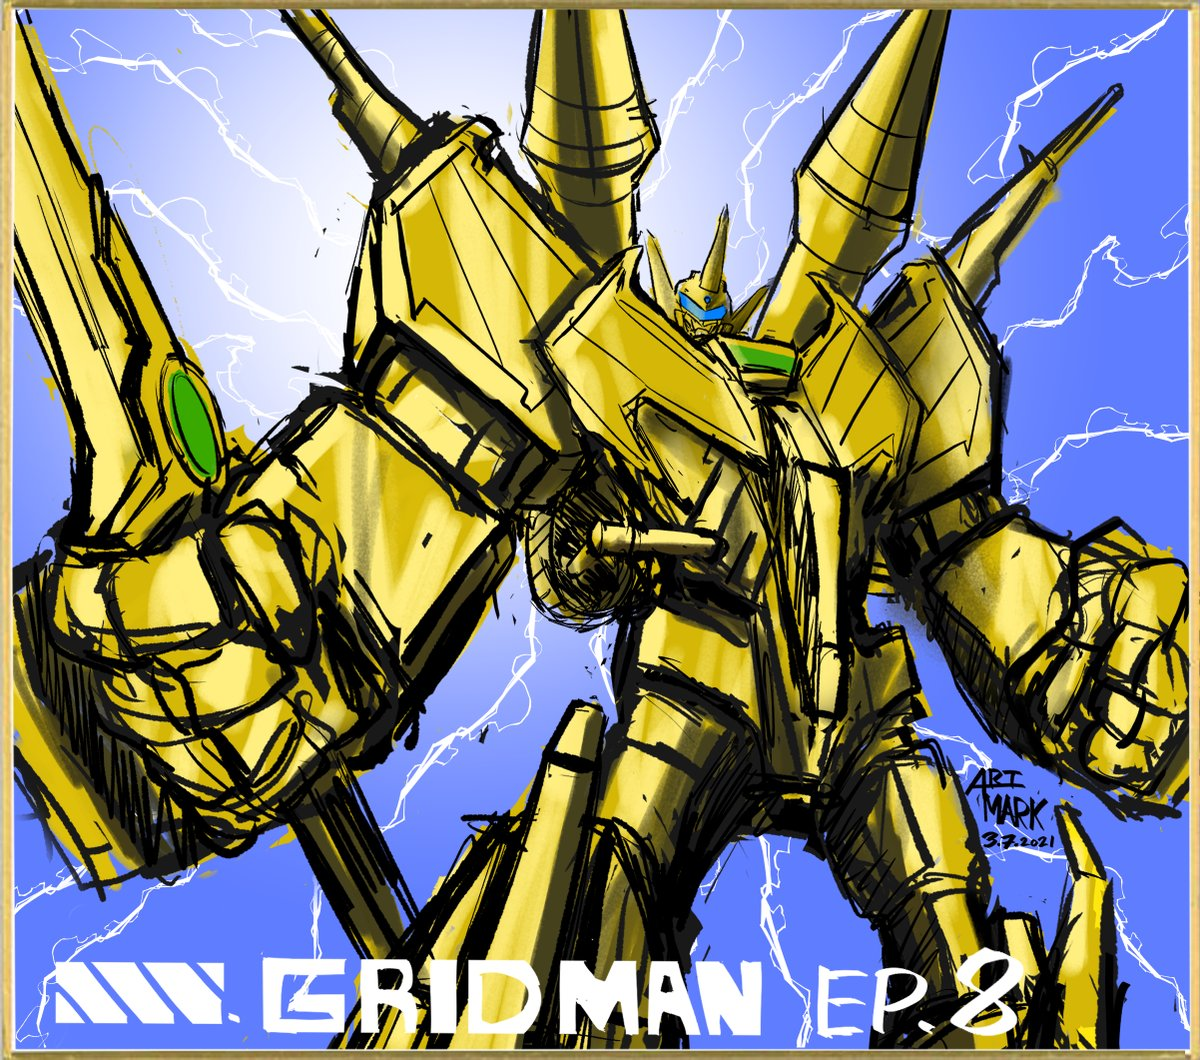 Warm Up sketch Tonight SSSS.GRIDMAN episode 8 will be broadcast on Toonami/ @adultswim   at 2:30 AM. Please check it out! #SSSS_GRIDMAN #Toonami #anime #StudioTrigger #SSSS_DYNAZENON #GRIDMAN #Trigger #SSSSGRIDMAN #FULLPOWEREDGRIDMAN